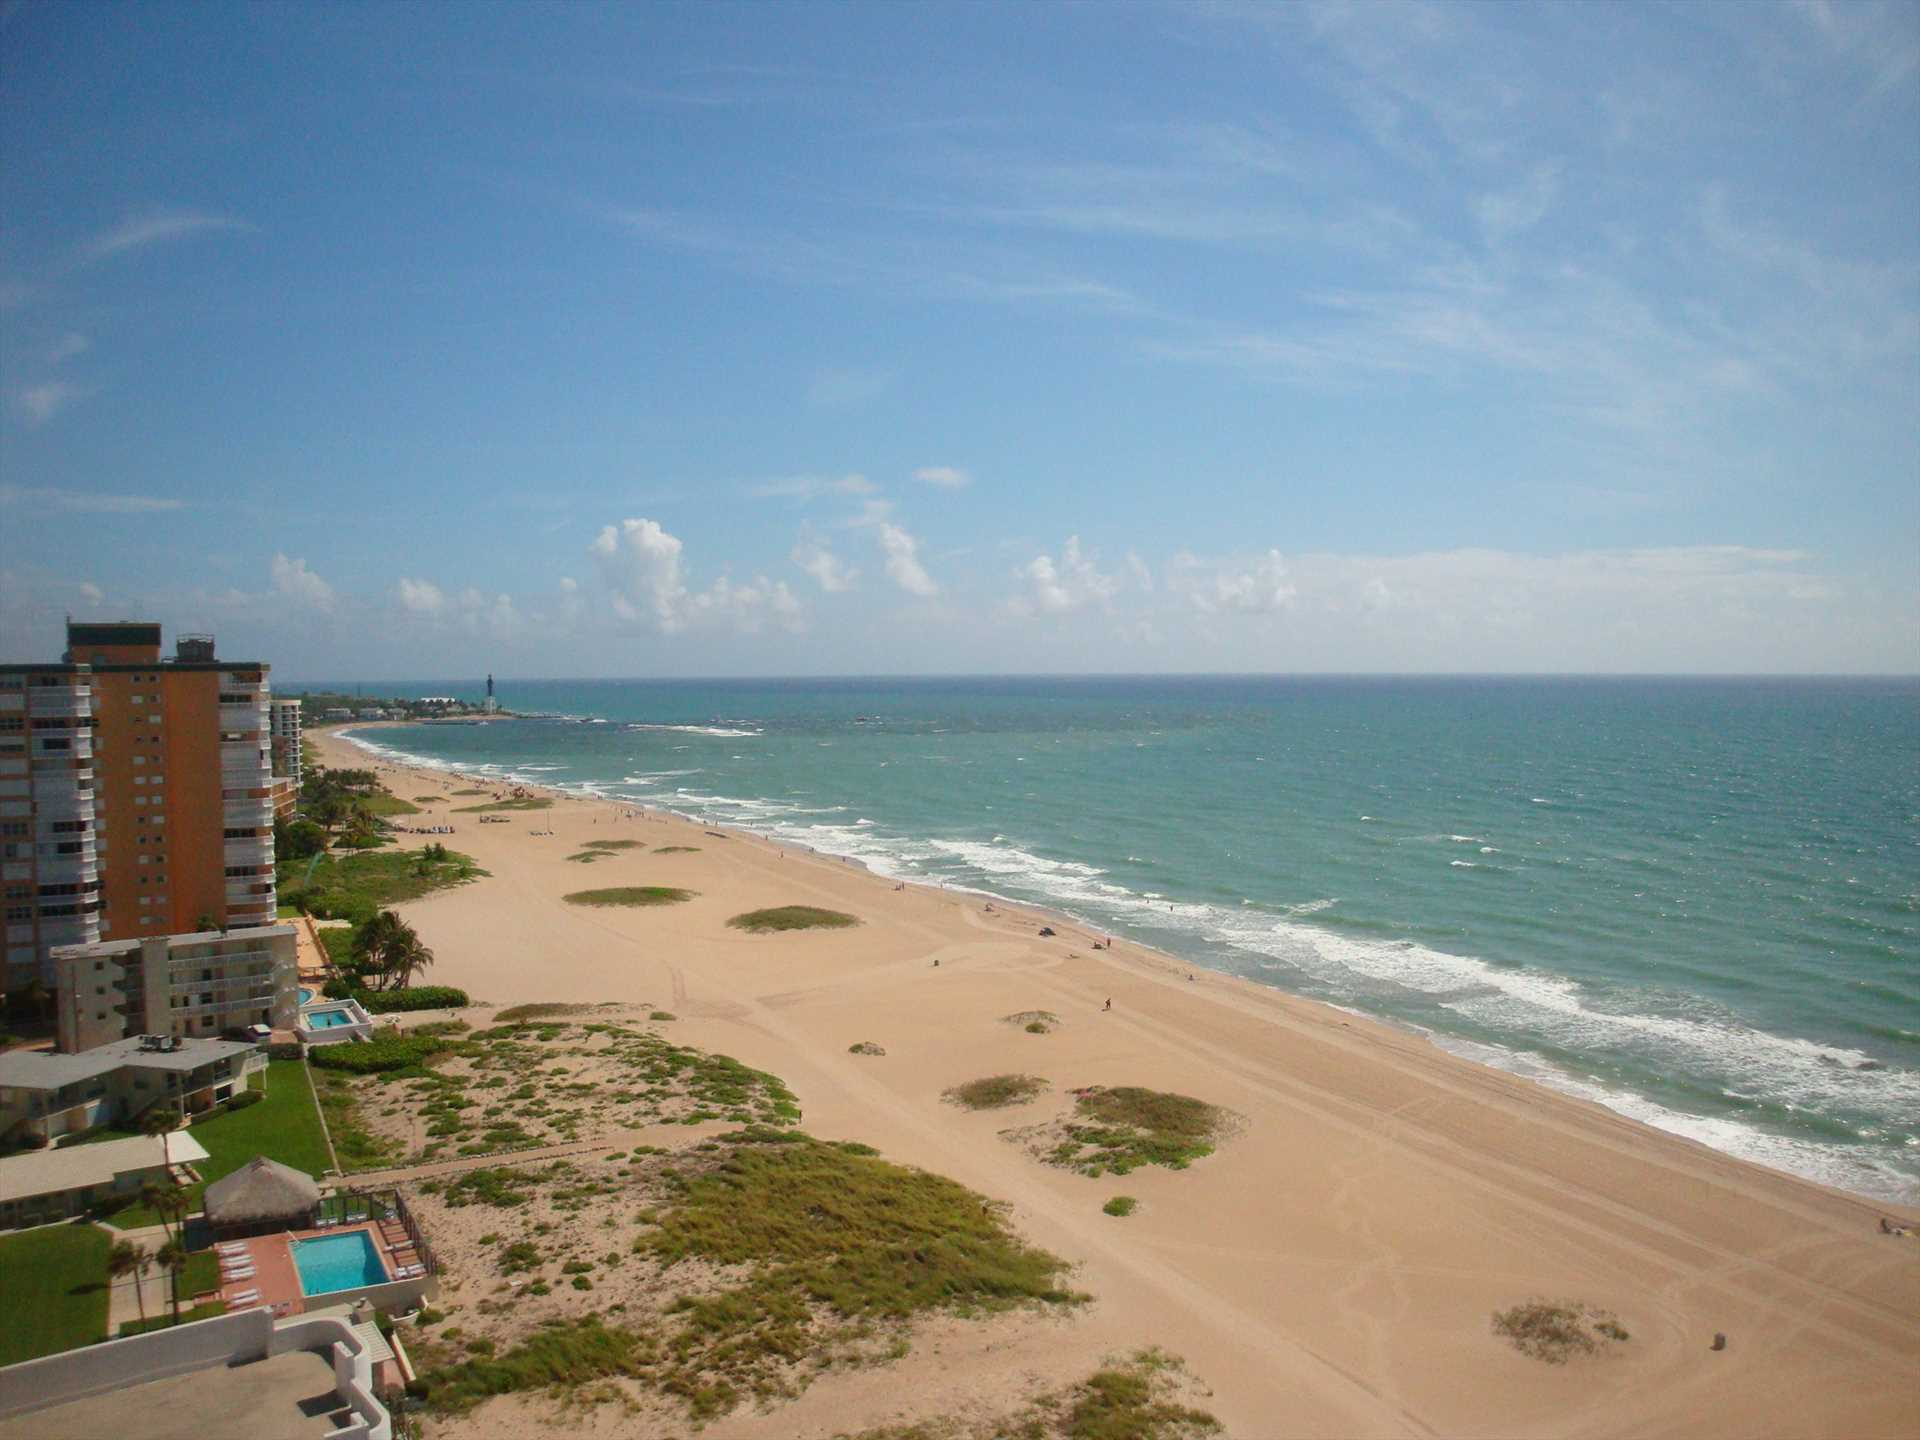 The Atlantic breezes, sand and surf await your arrival.